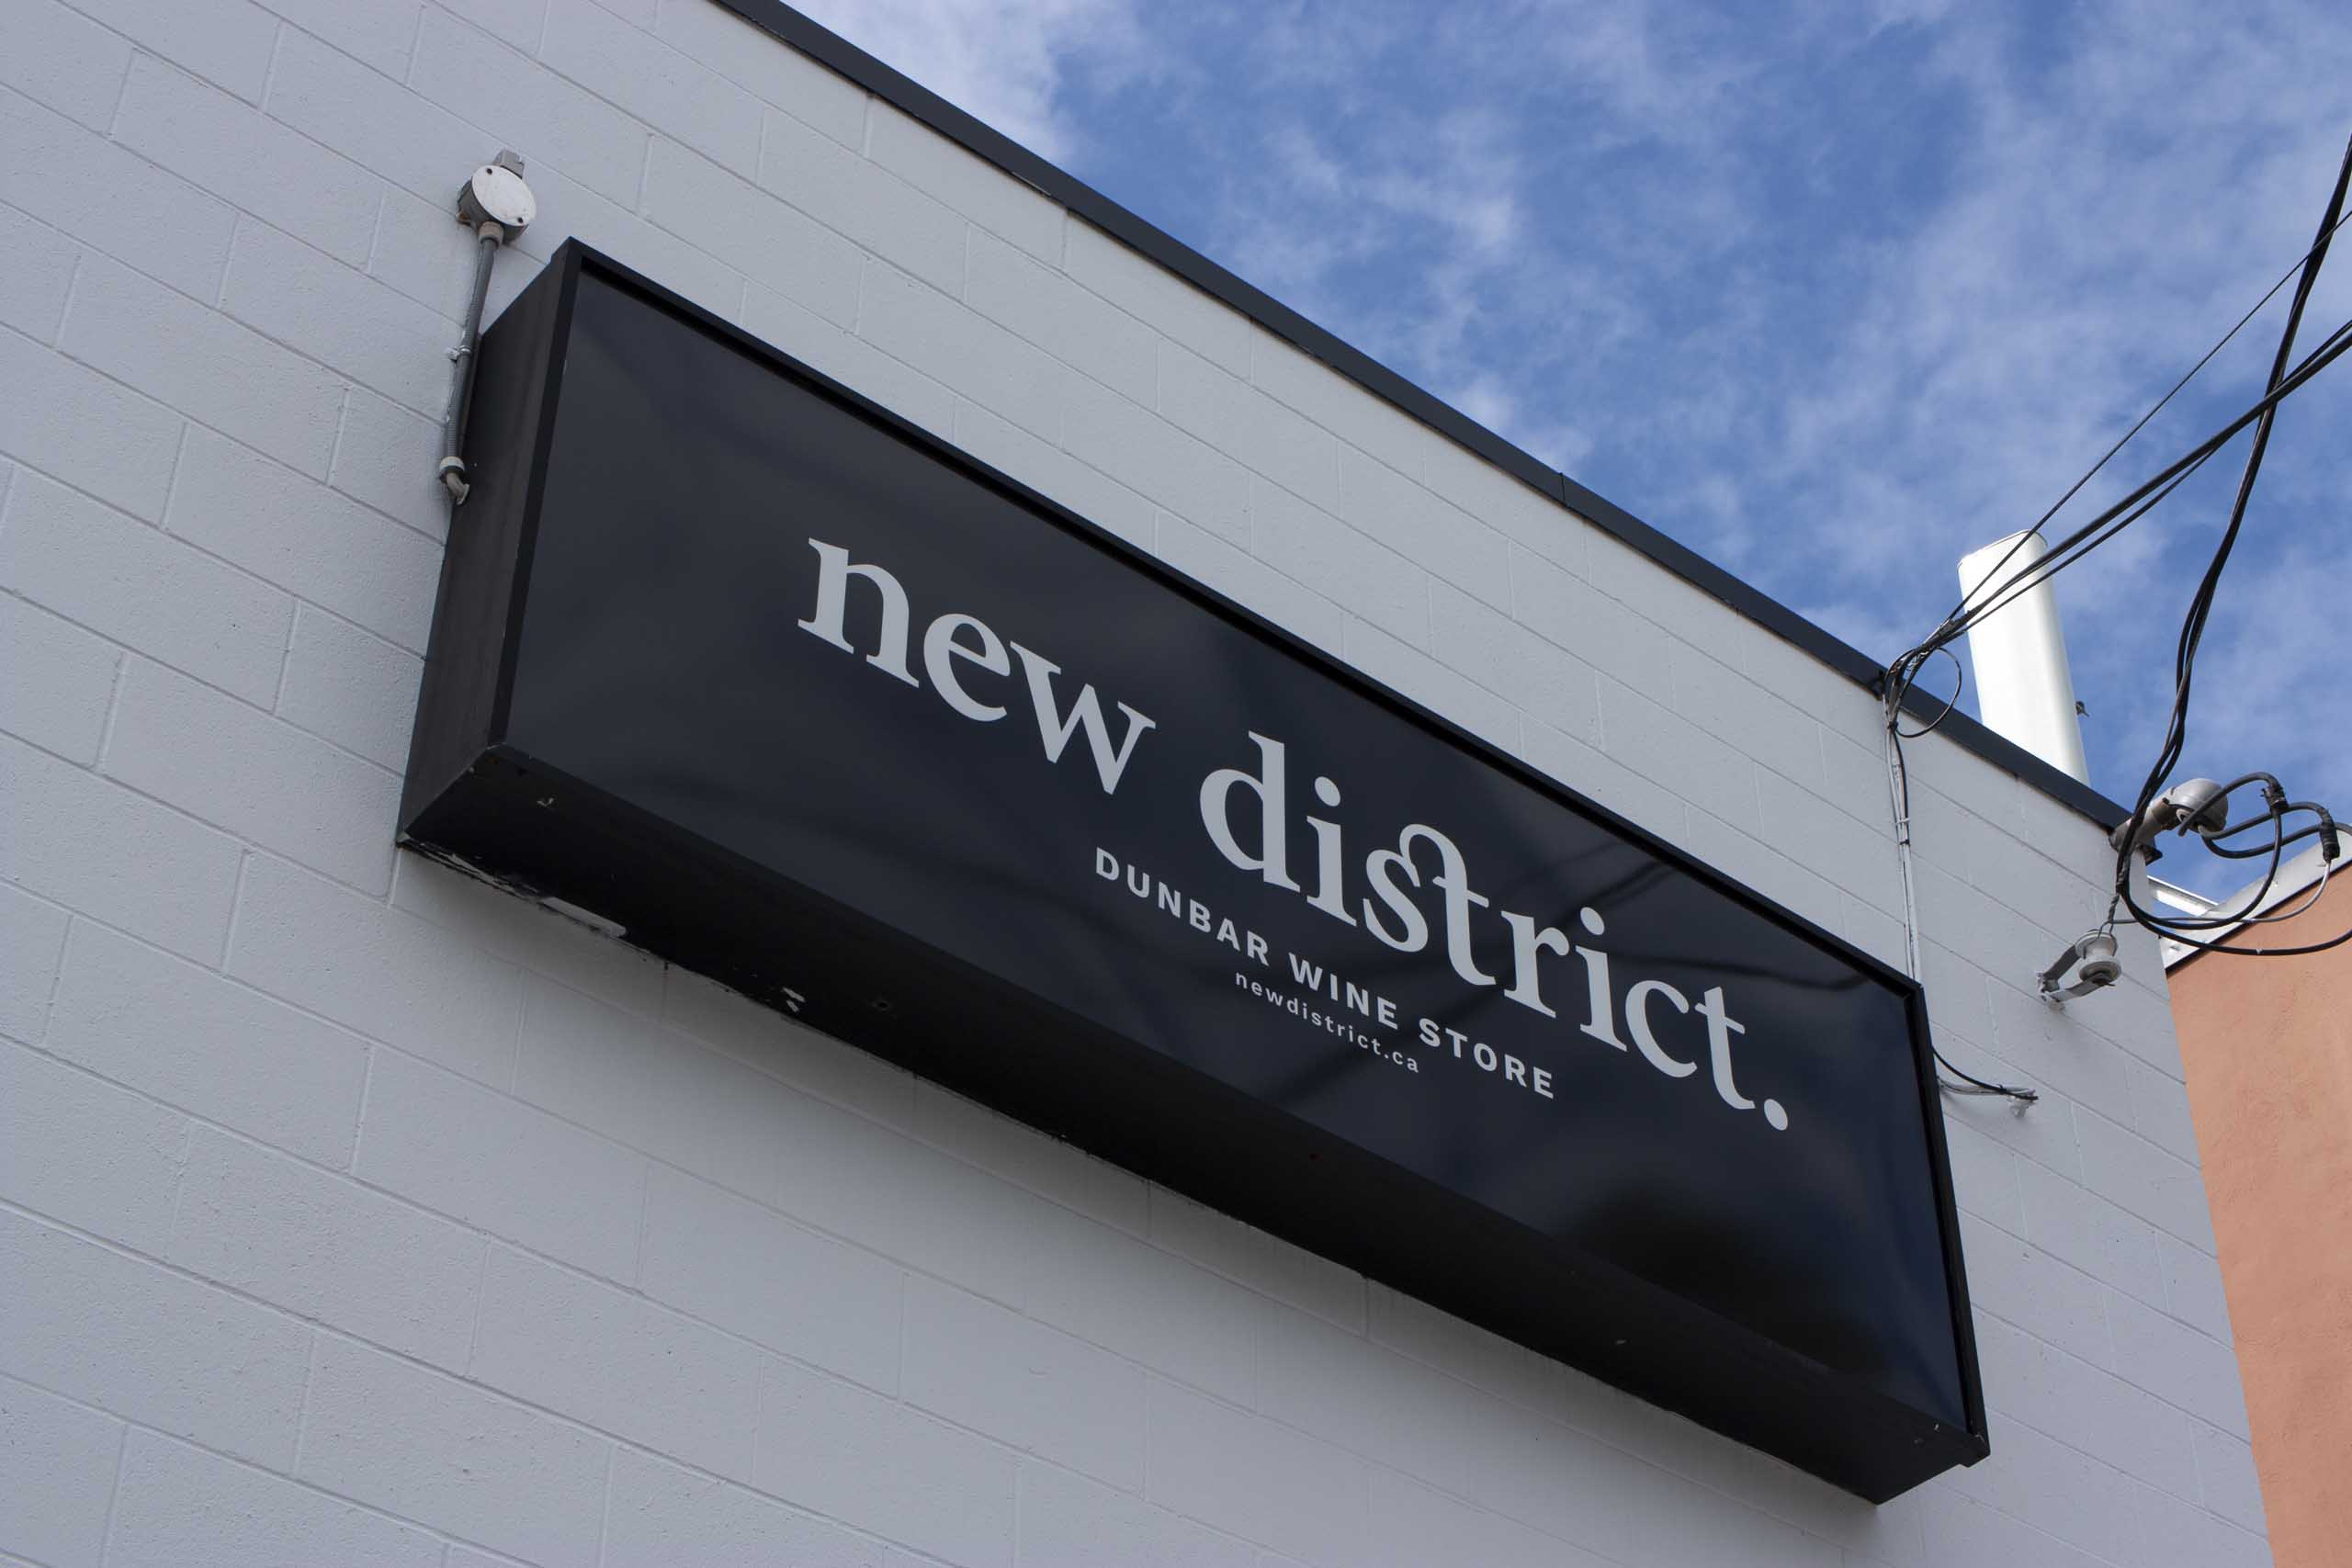 New District lighbox sign in white on black near the top of the building — by Yagnyuk.